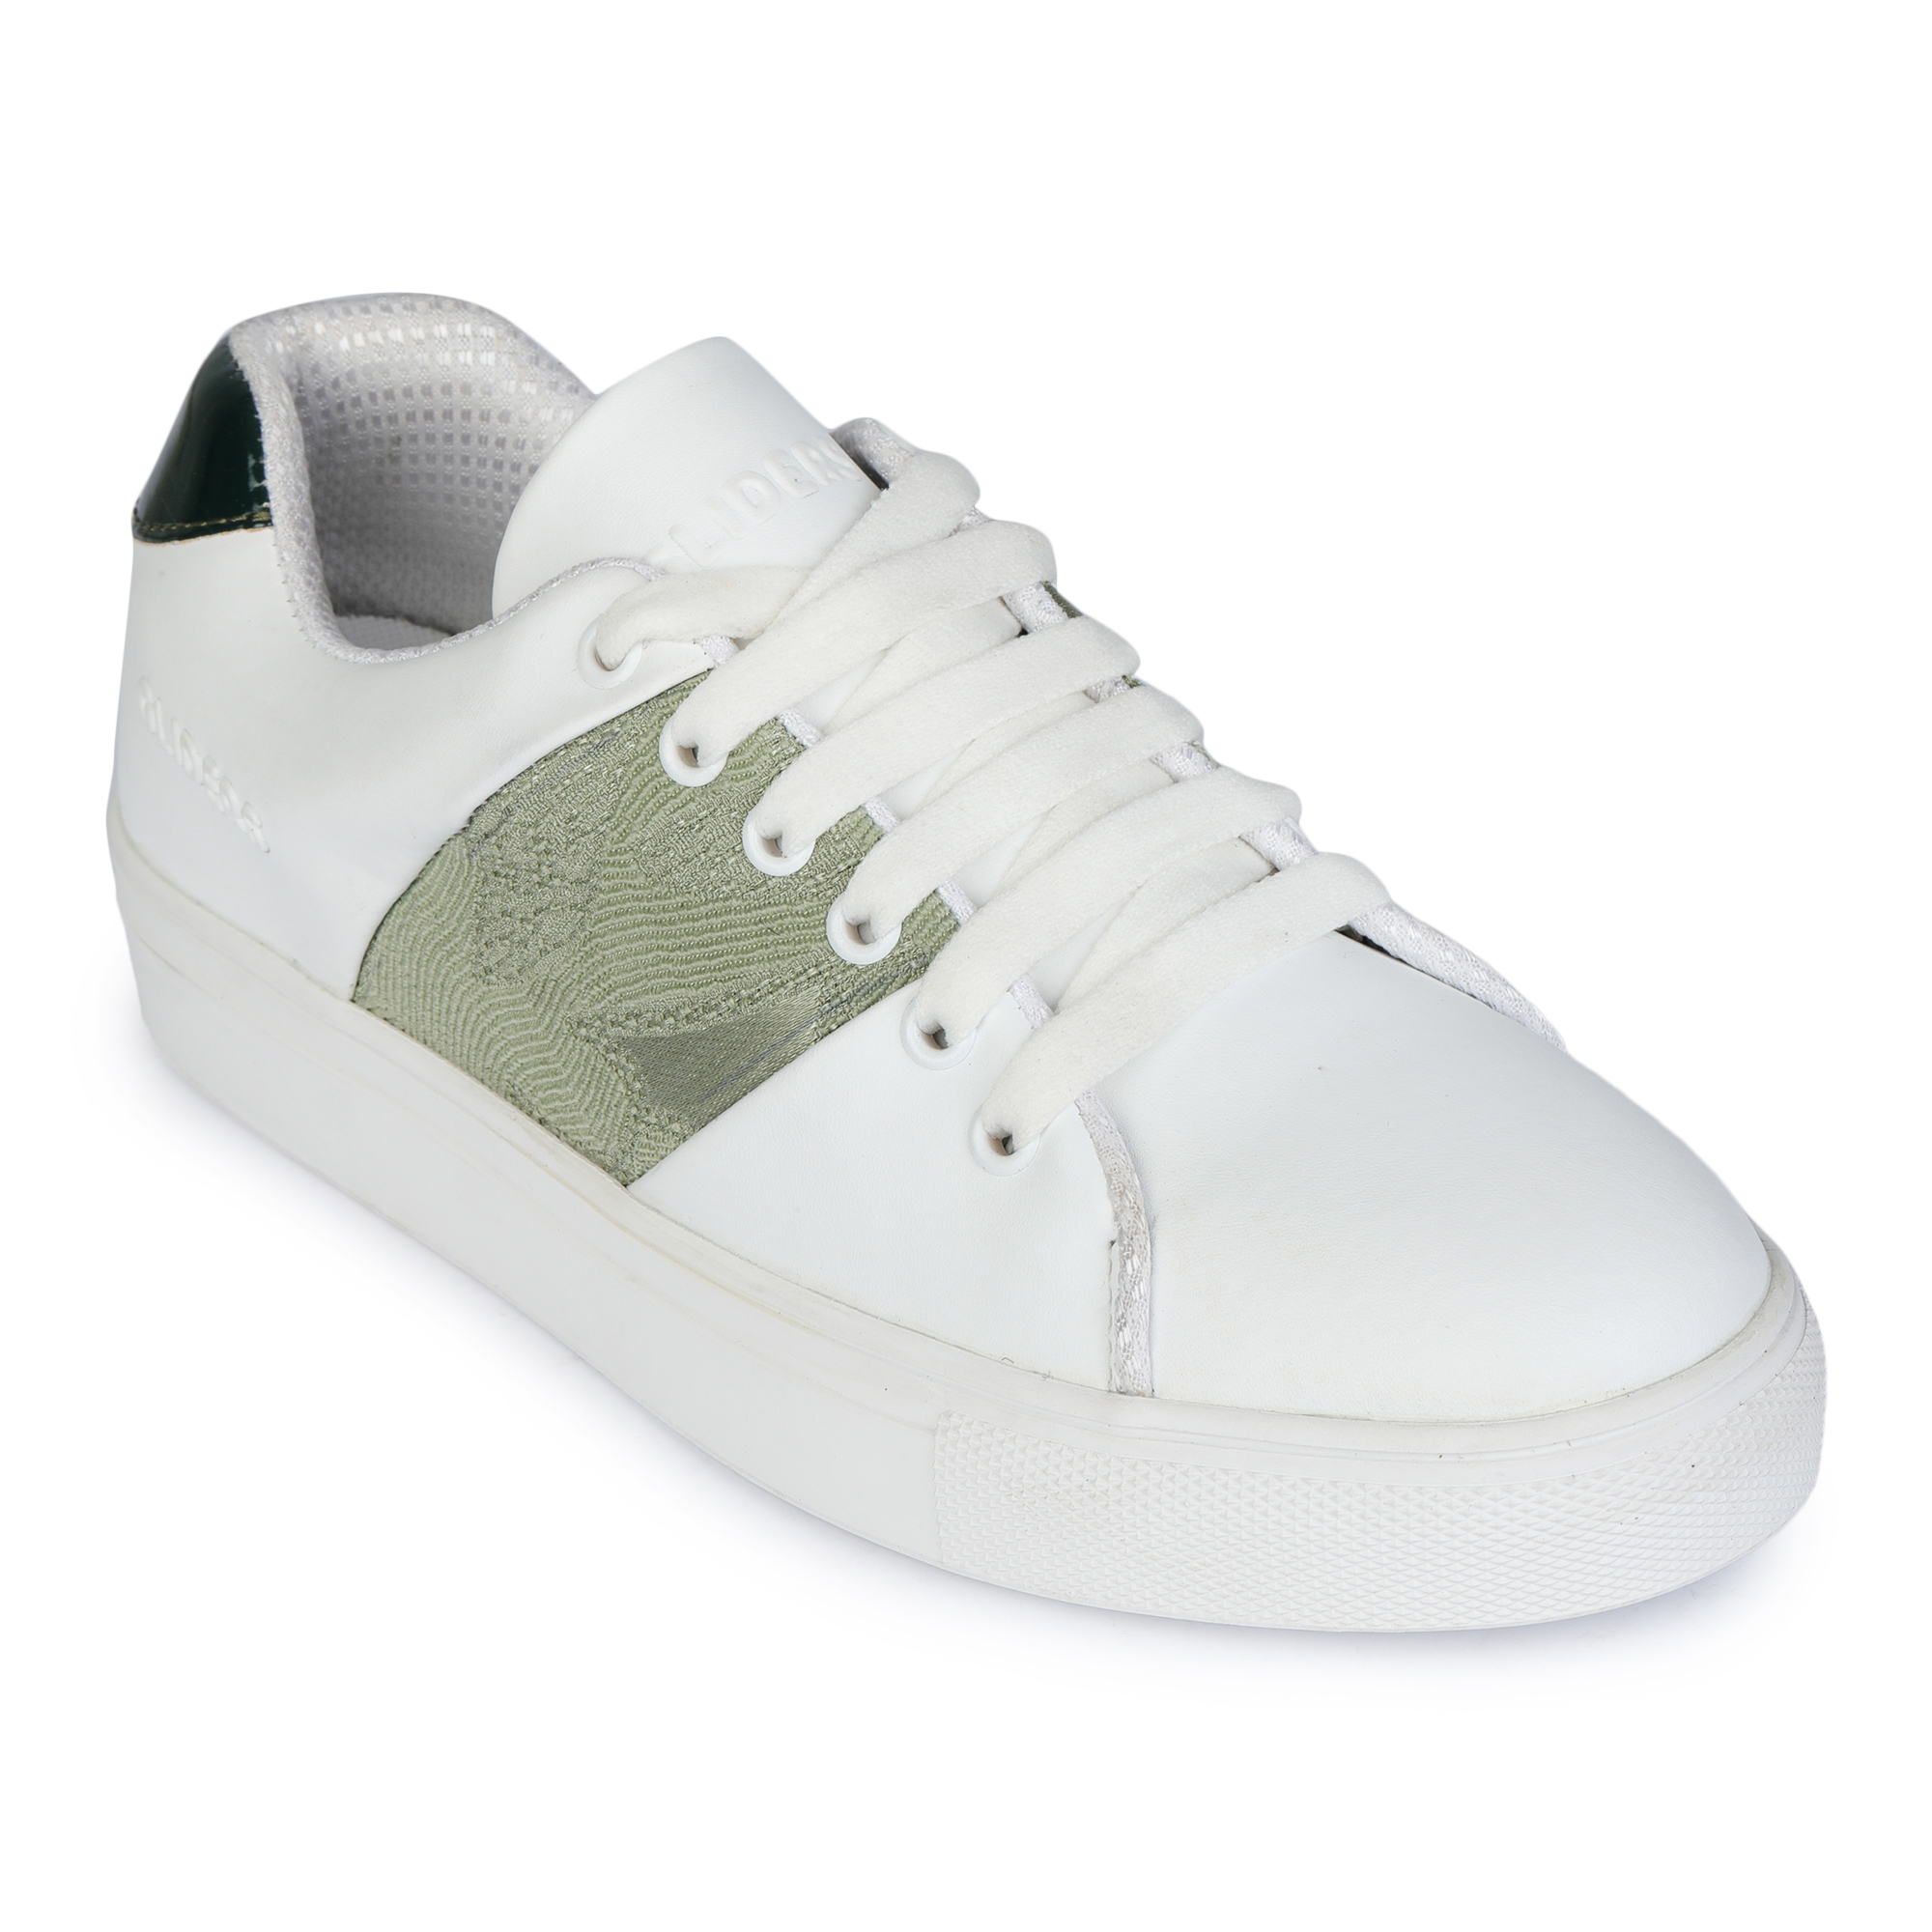 Liberty | Liberty Gliders White Sports Running Shoes PIPER-1E_White For - Women